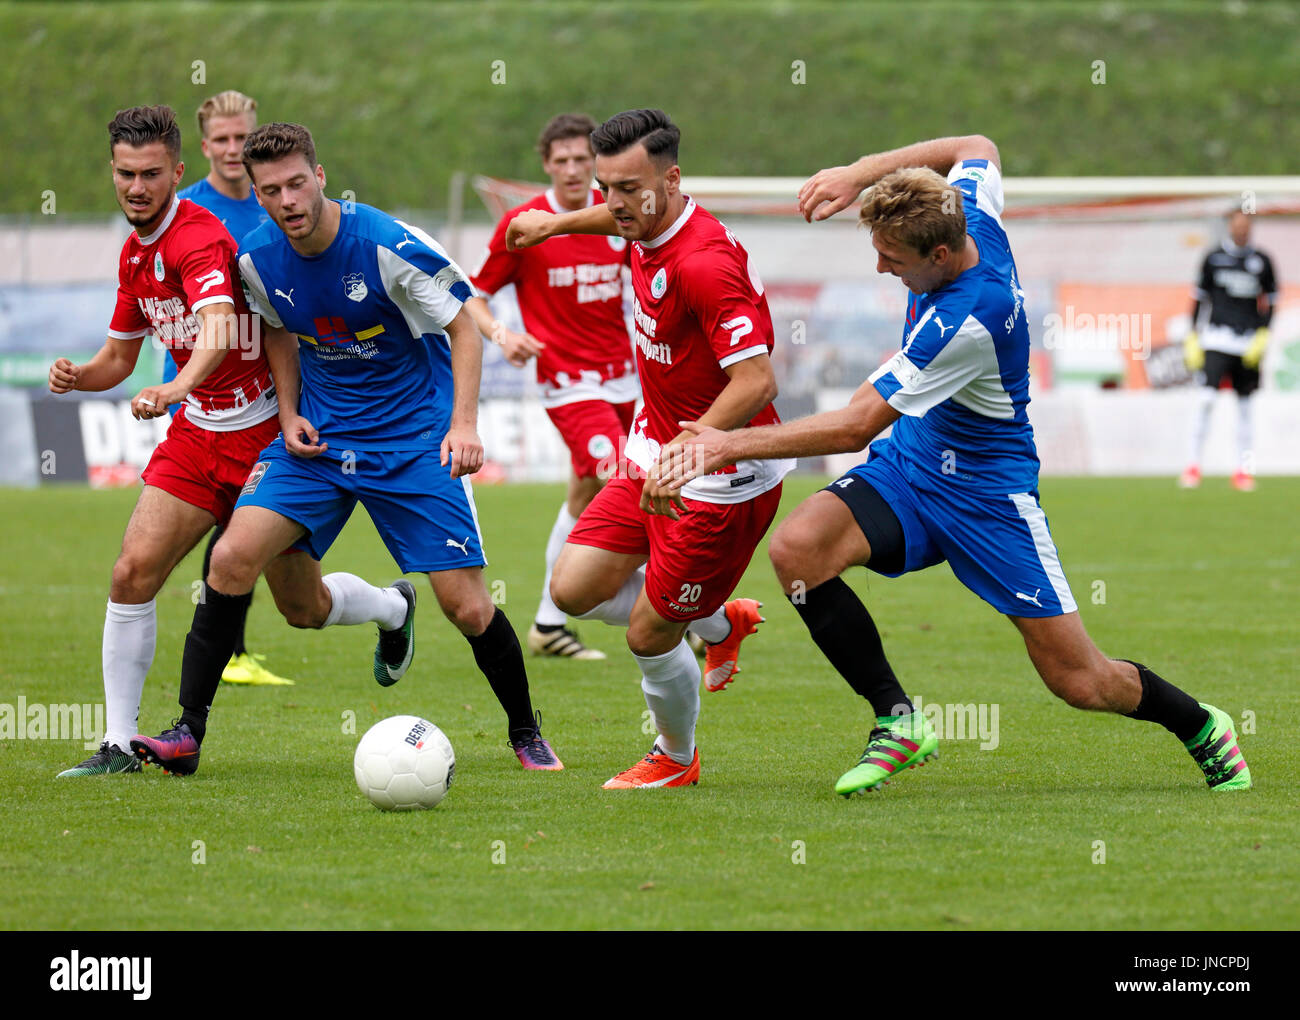 sports,football,Regional League West,2017/2018,Rot Weiss Oberhausen vs SV Westfalia Rhynern 2:1,Stadium Niederrhein in Oberhausen,scene of the match,f.l.t.r. Enes Topal (RWO),Nils Hoenicke (Rhynern),Jan Kleine (Rhynern),Robert Flessers (RWO),Tarik Kurt (RWO),Patrick Polk (Rhynern) - Stock Image